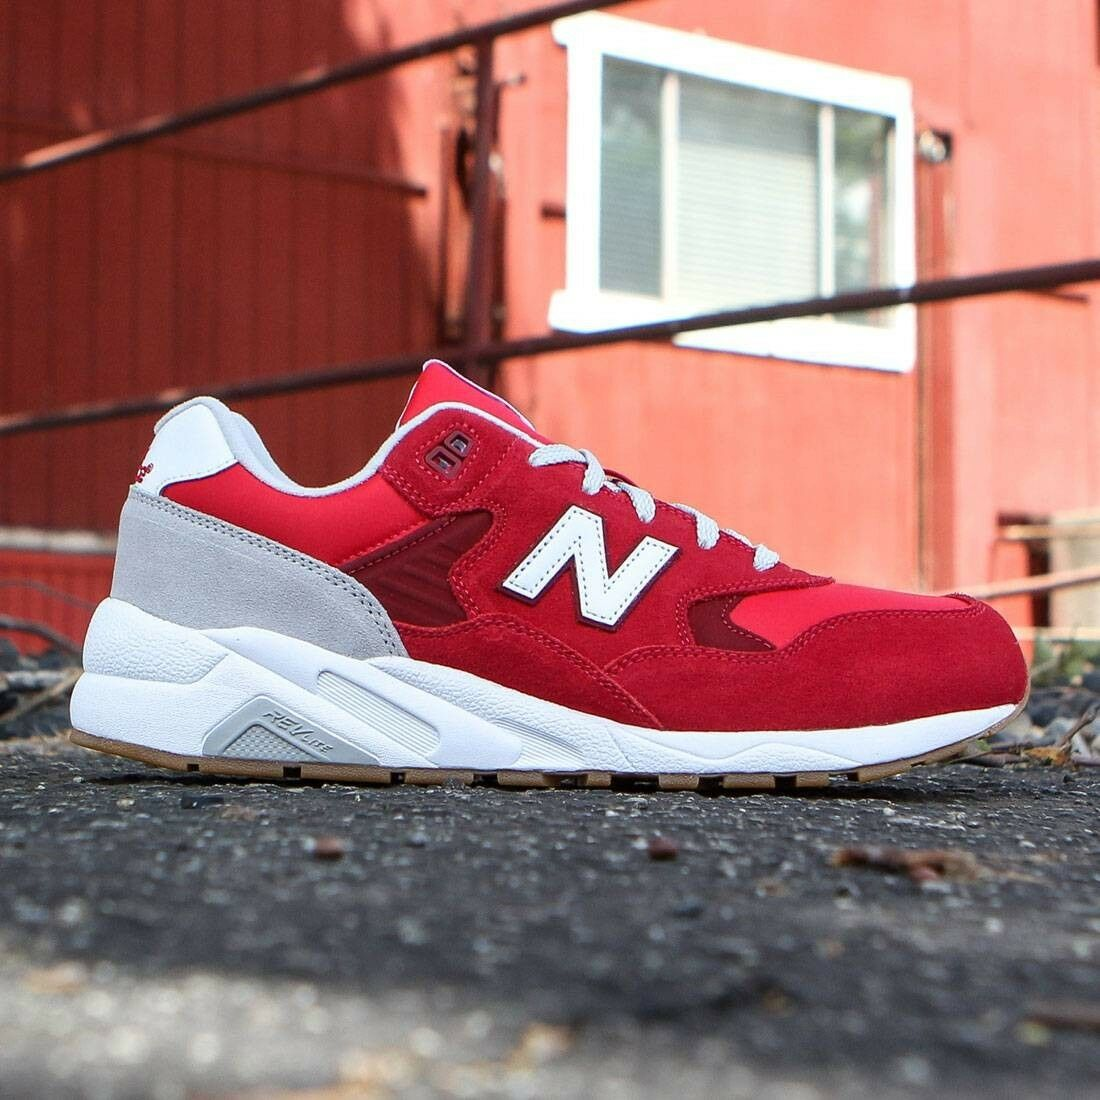 NEW IN BOX! BALANCE Uomo NEW BALANCE BOX! NB 580 ROSSO RUNNING CASUAL SCARPE MRT580MB SIZE 7-11 0fd487